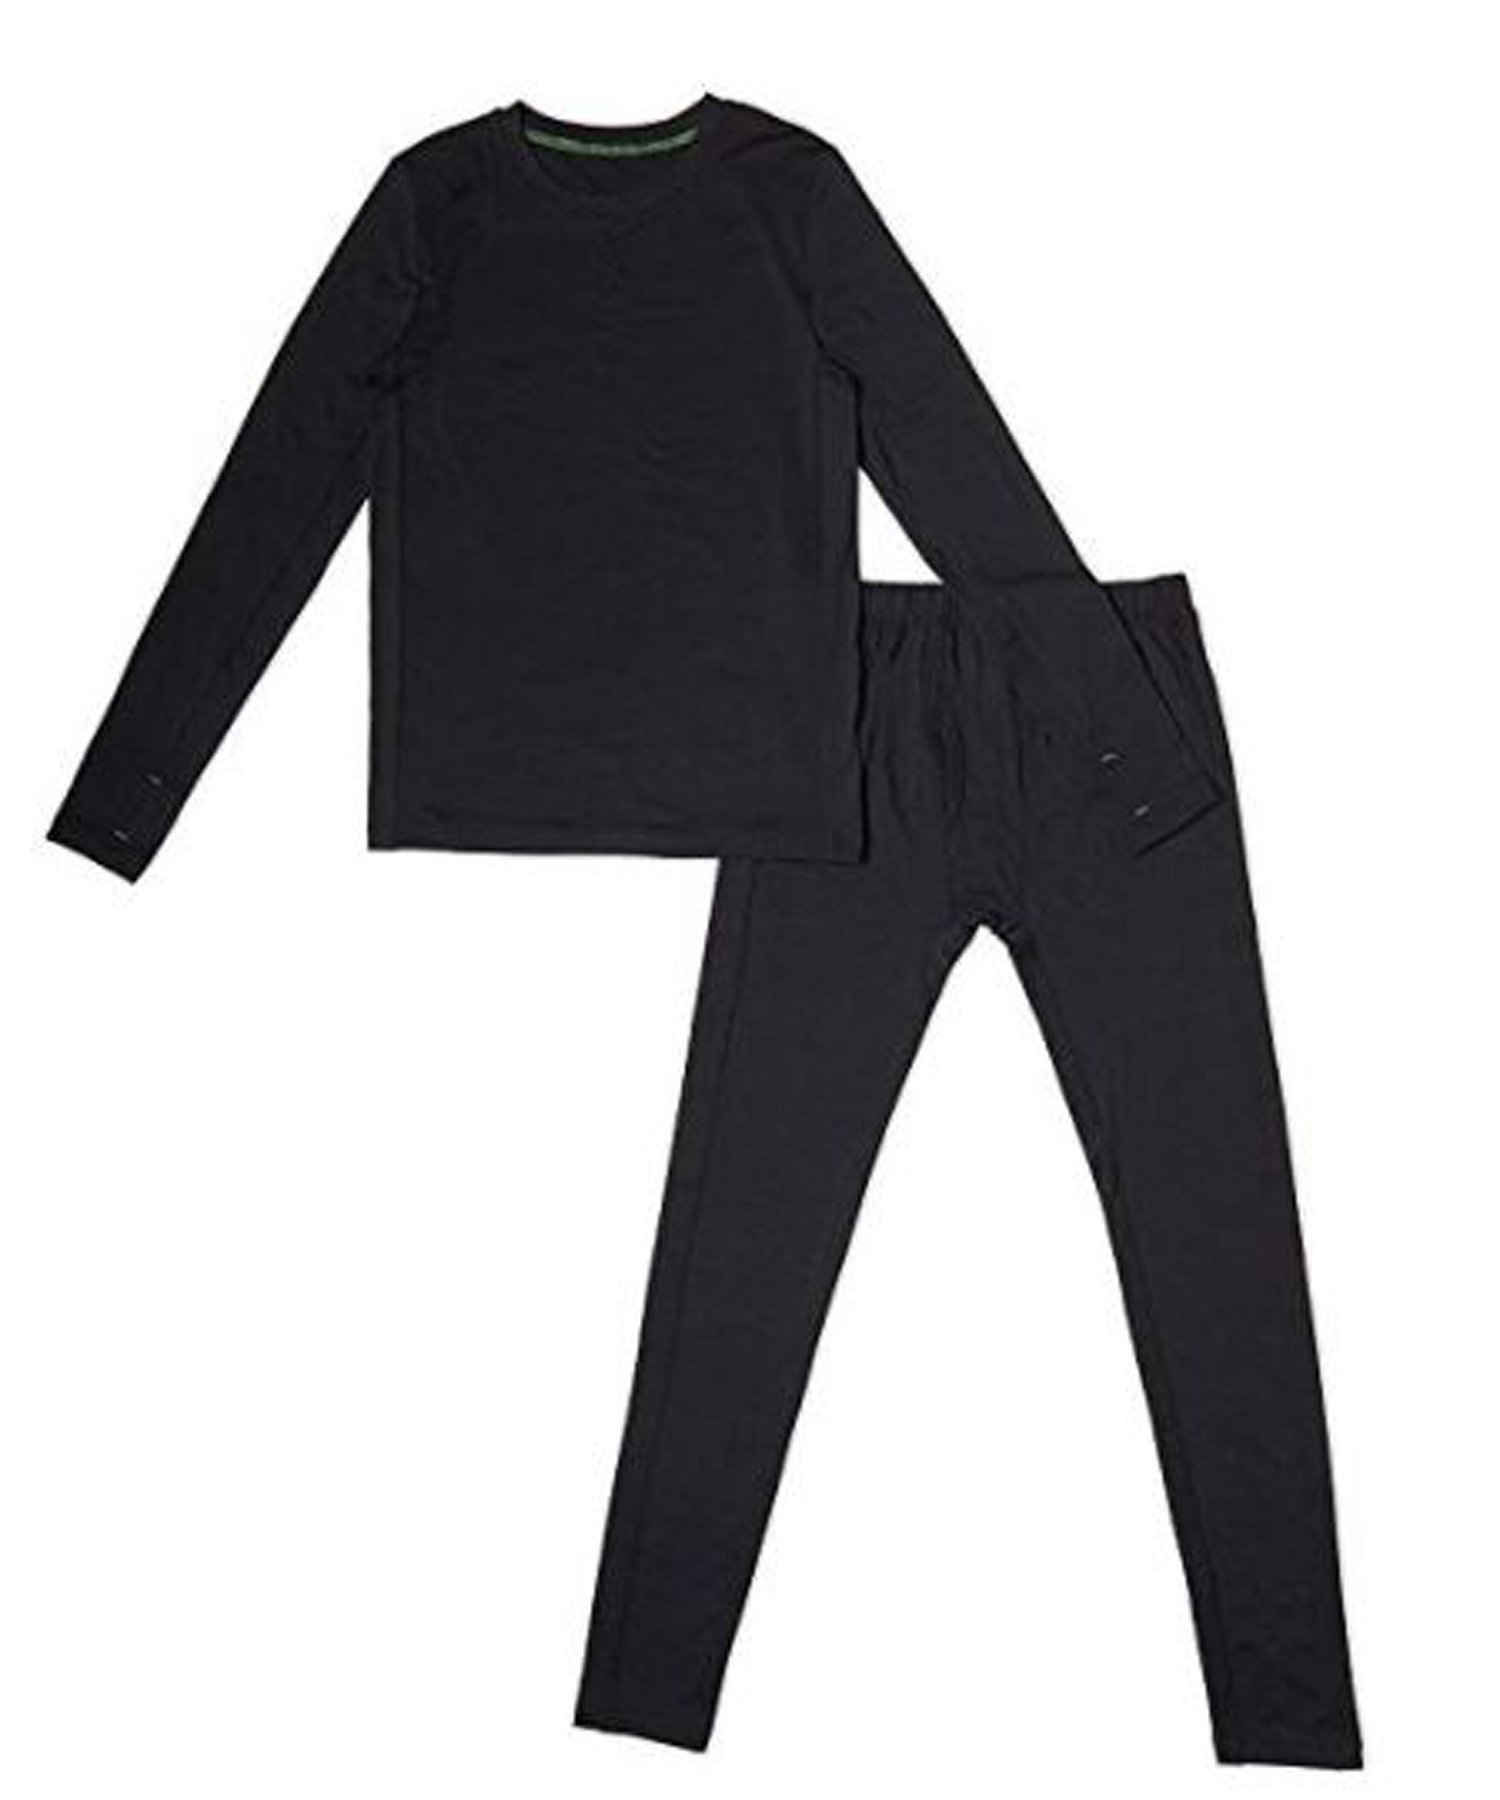 Cuddl Duds Boys Climatesmart Base Layer Thermal Comfortech Set (L 12/14, Black) by Cuddl Duds Komar